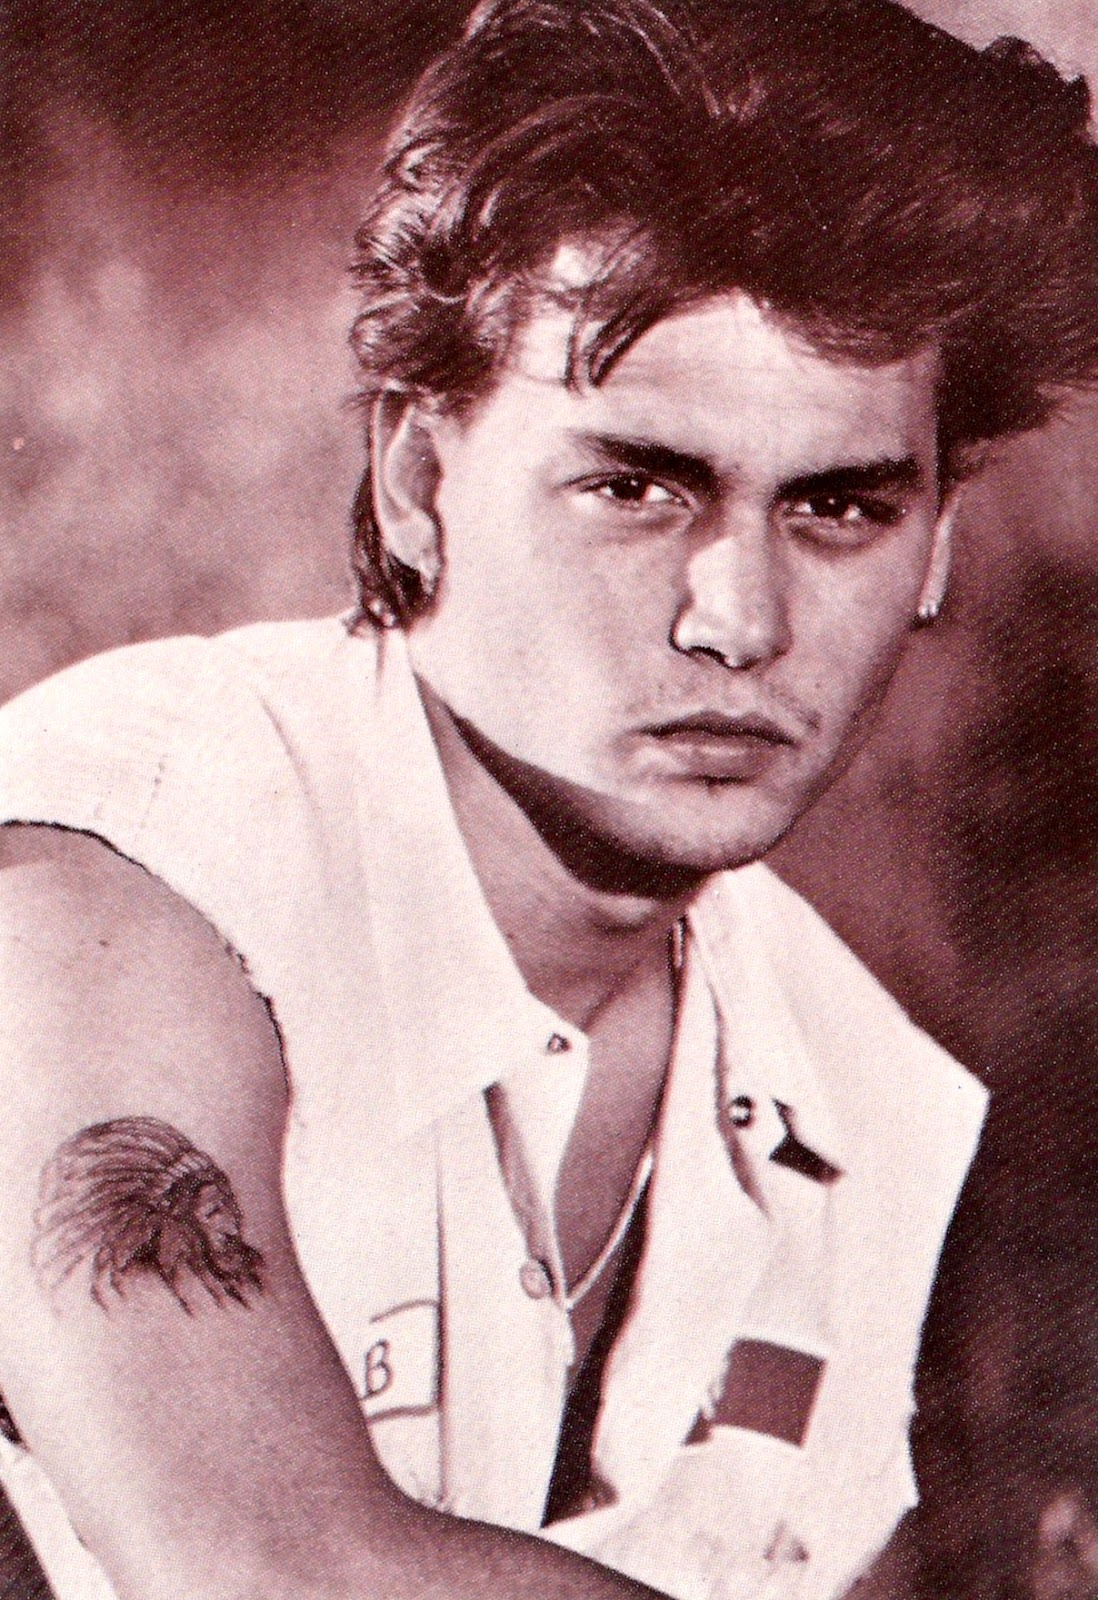 That Johnny Depp American Teen 45